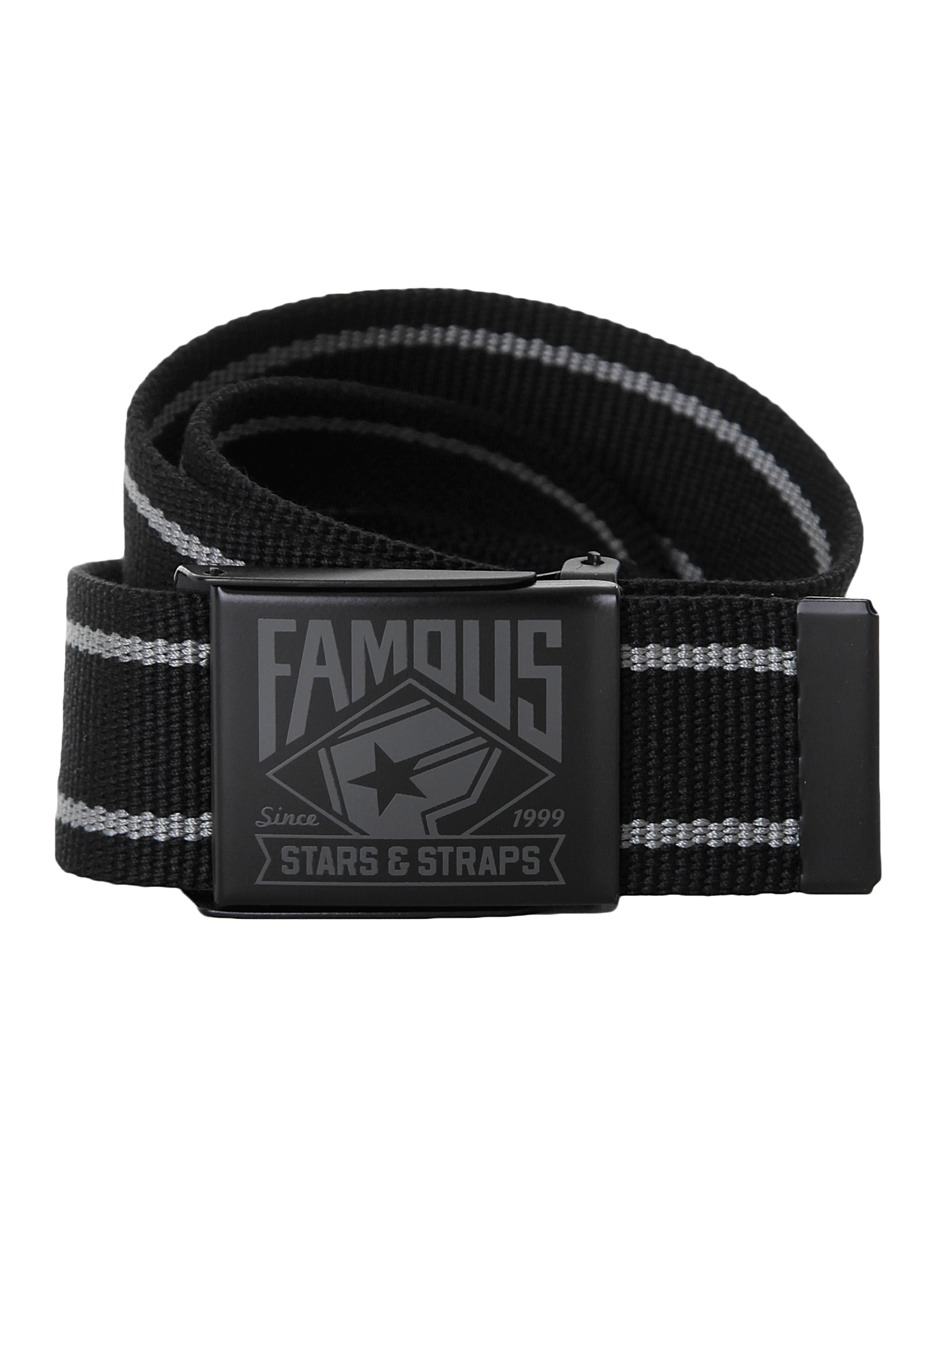 Famous stars and straps hustler belt what